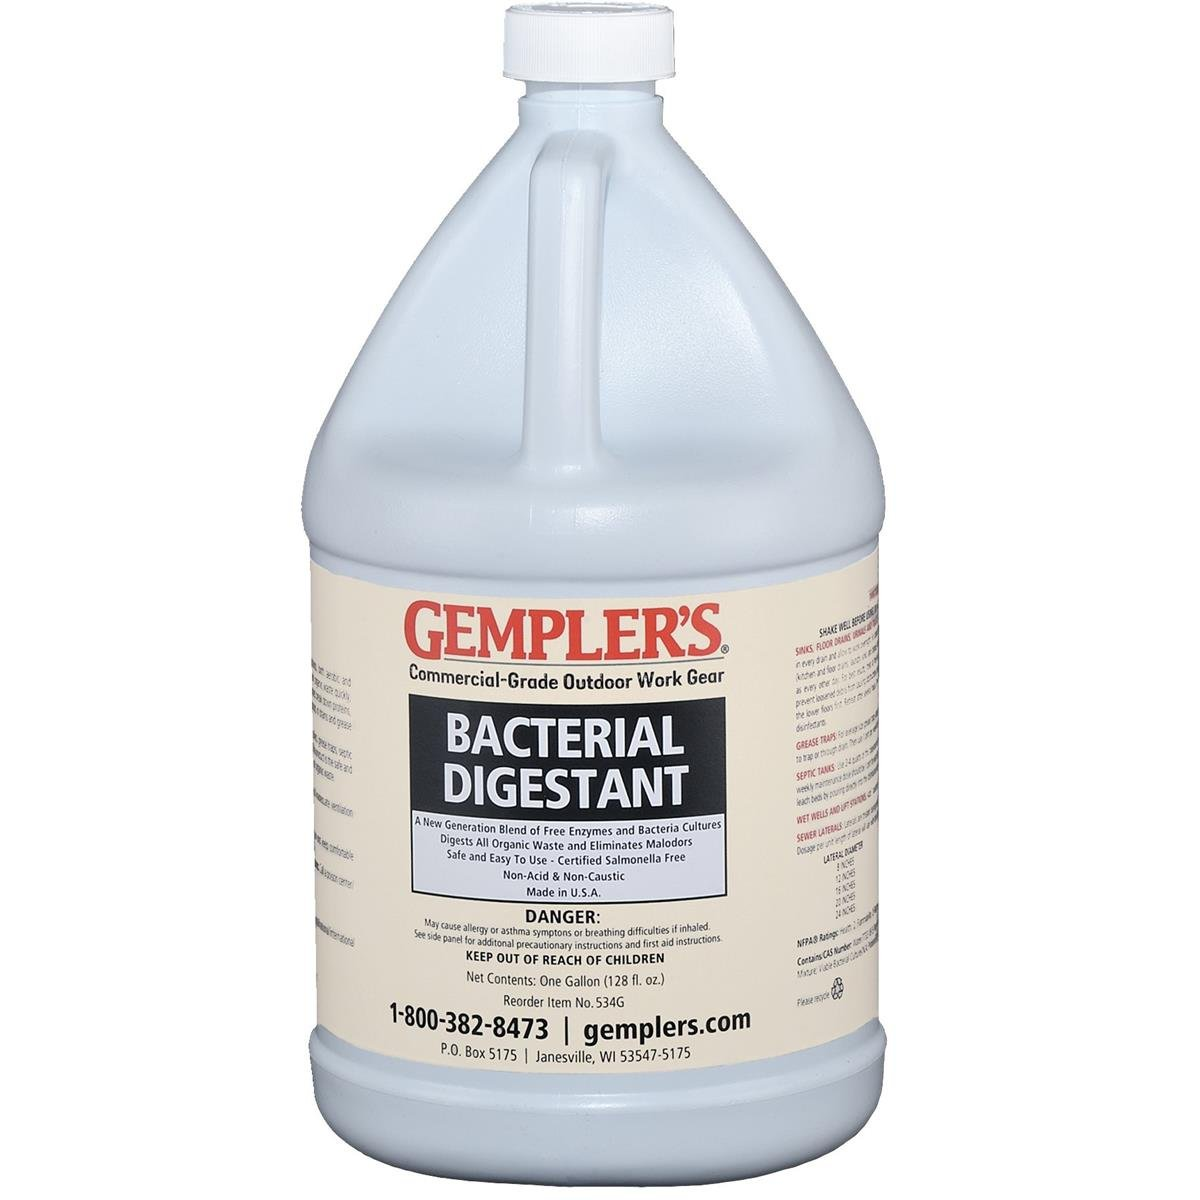 GEMPLER'S Extra-Strong All Natural Bacterial Digestant, 1 Gallon, for Treating and Keeping Septic Tanks and Drain Lines Clear + Best Odor Eliminator for Drains, Grease Traps, Sinks, Urinals/Toilets